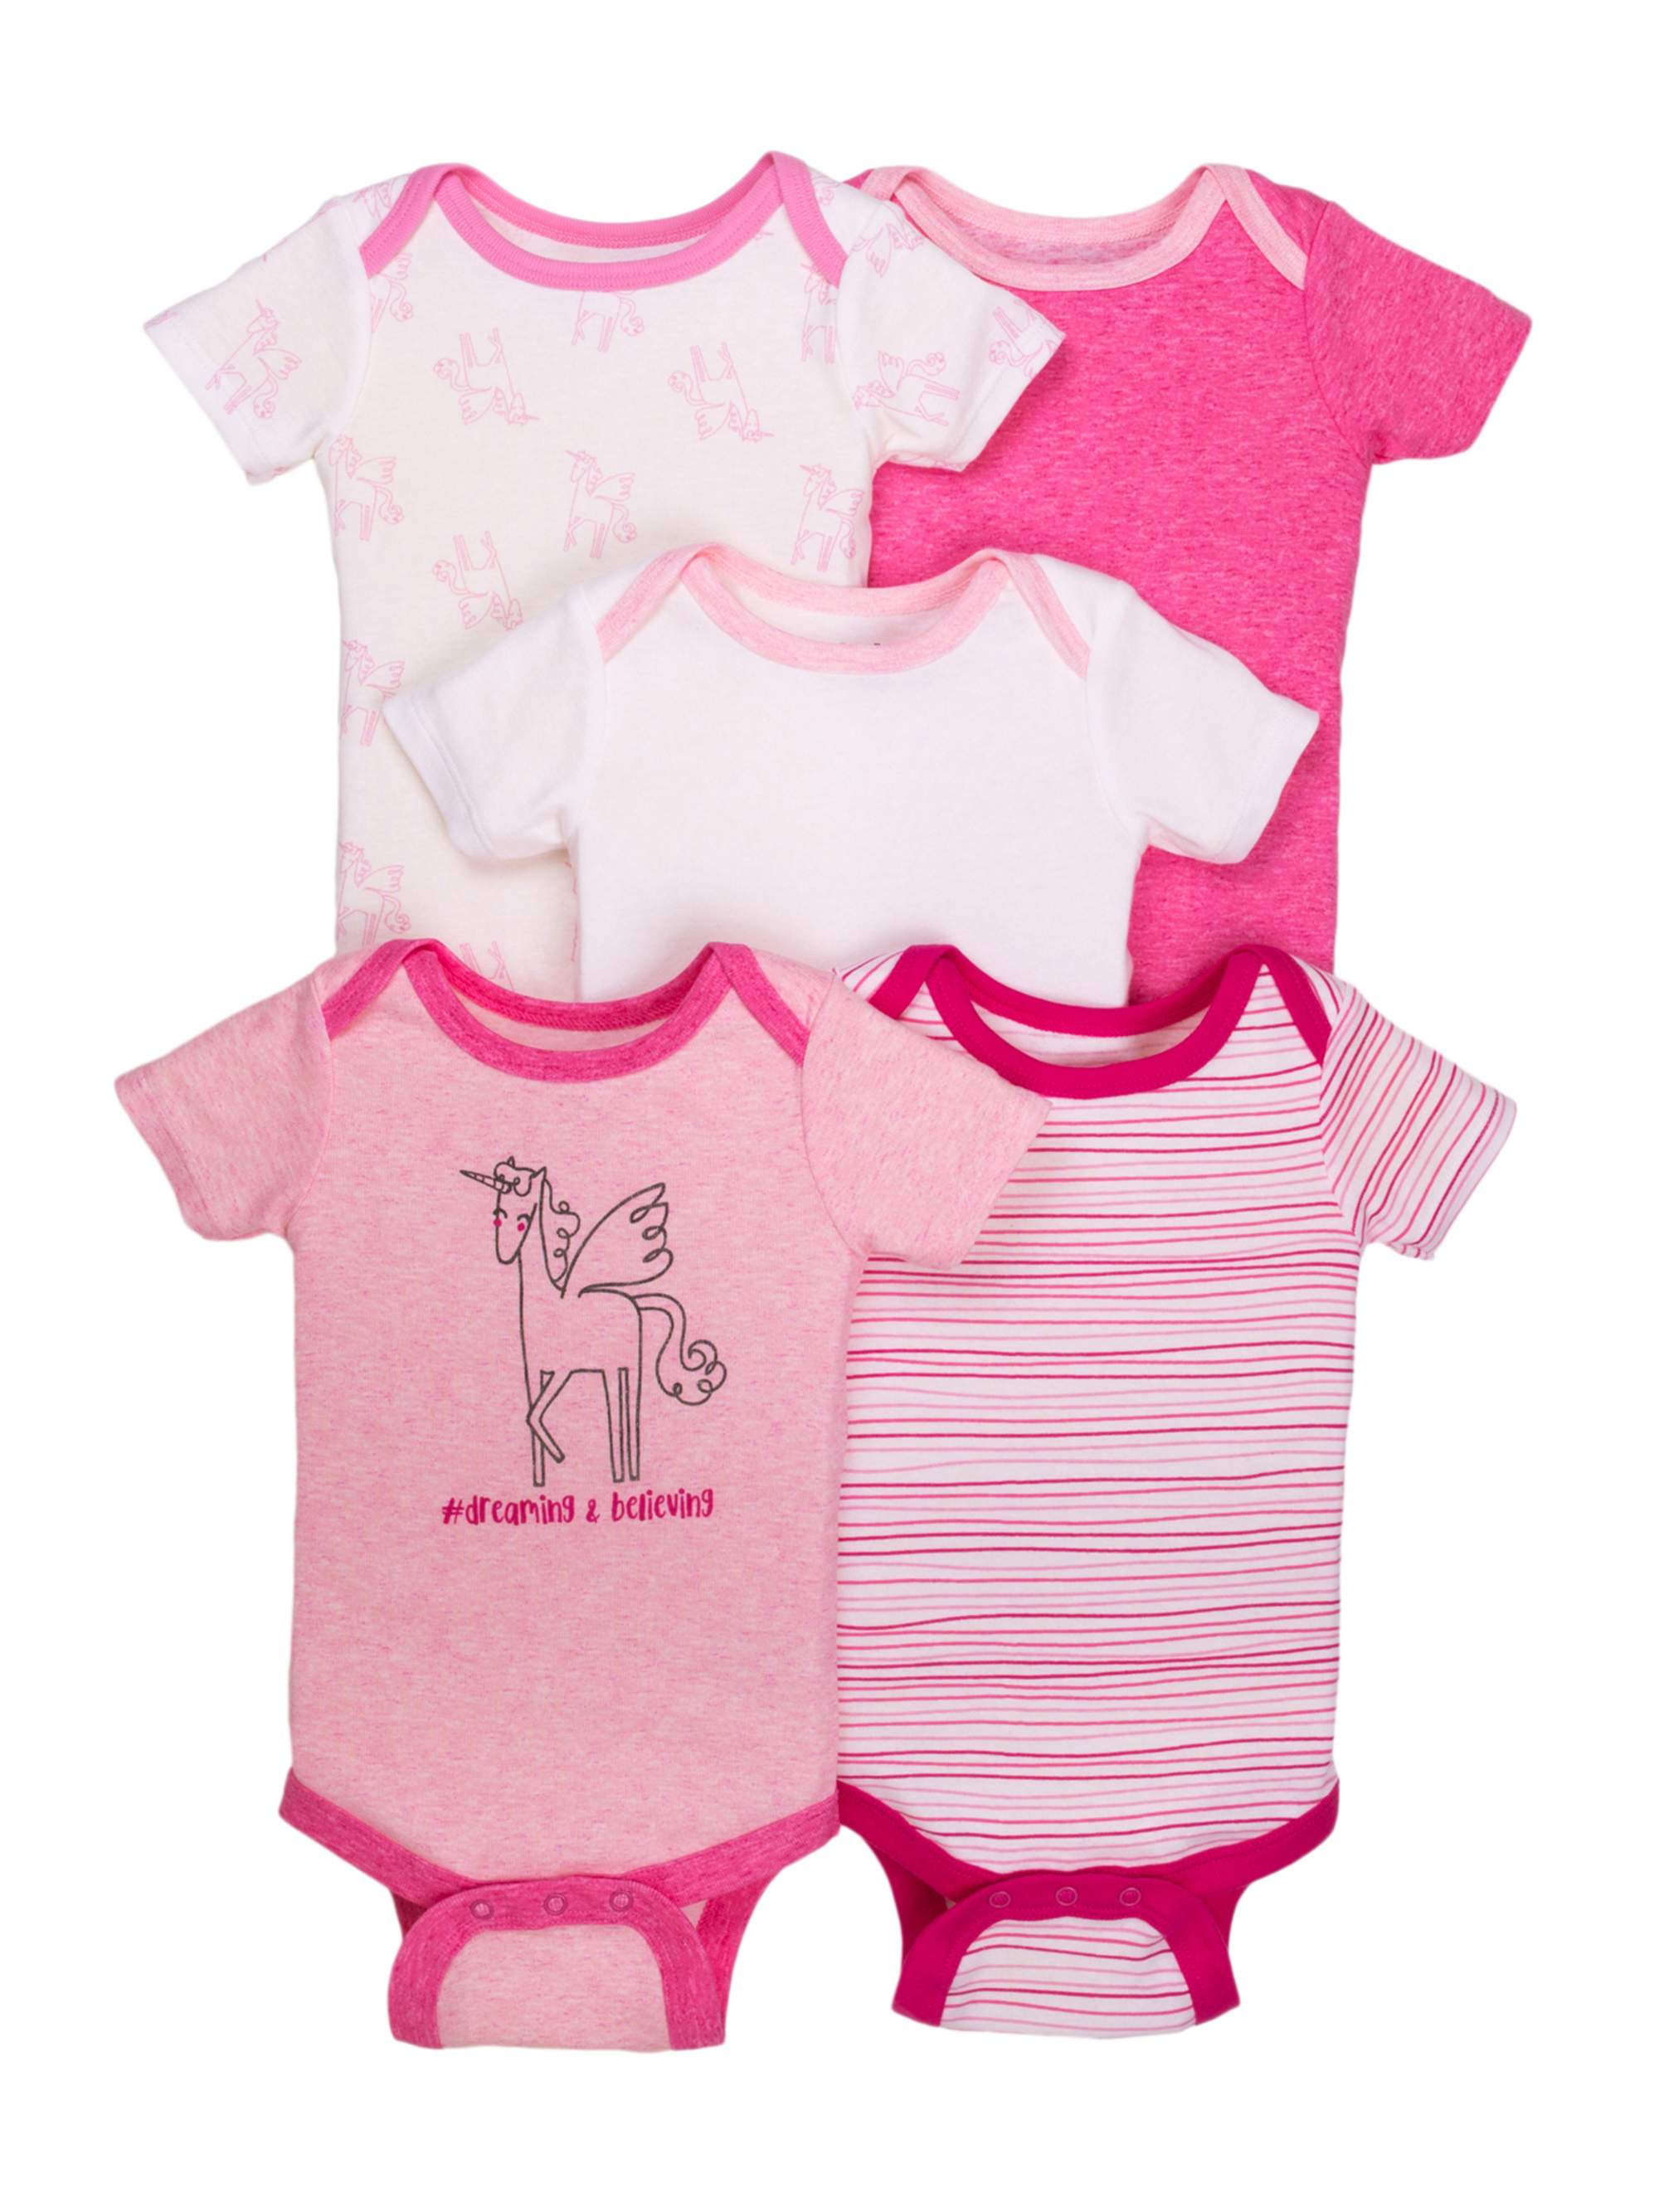 Newborn Baby Girl Assorted Short Sleeve Bodysuit, 5-pack